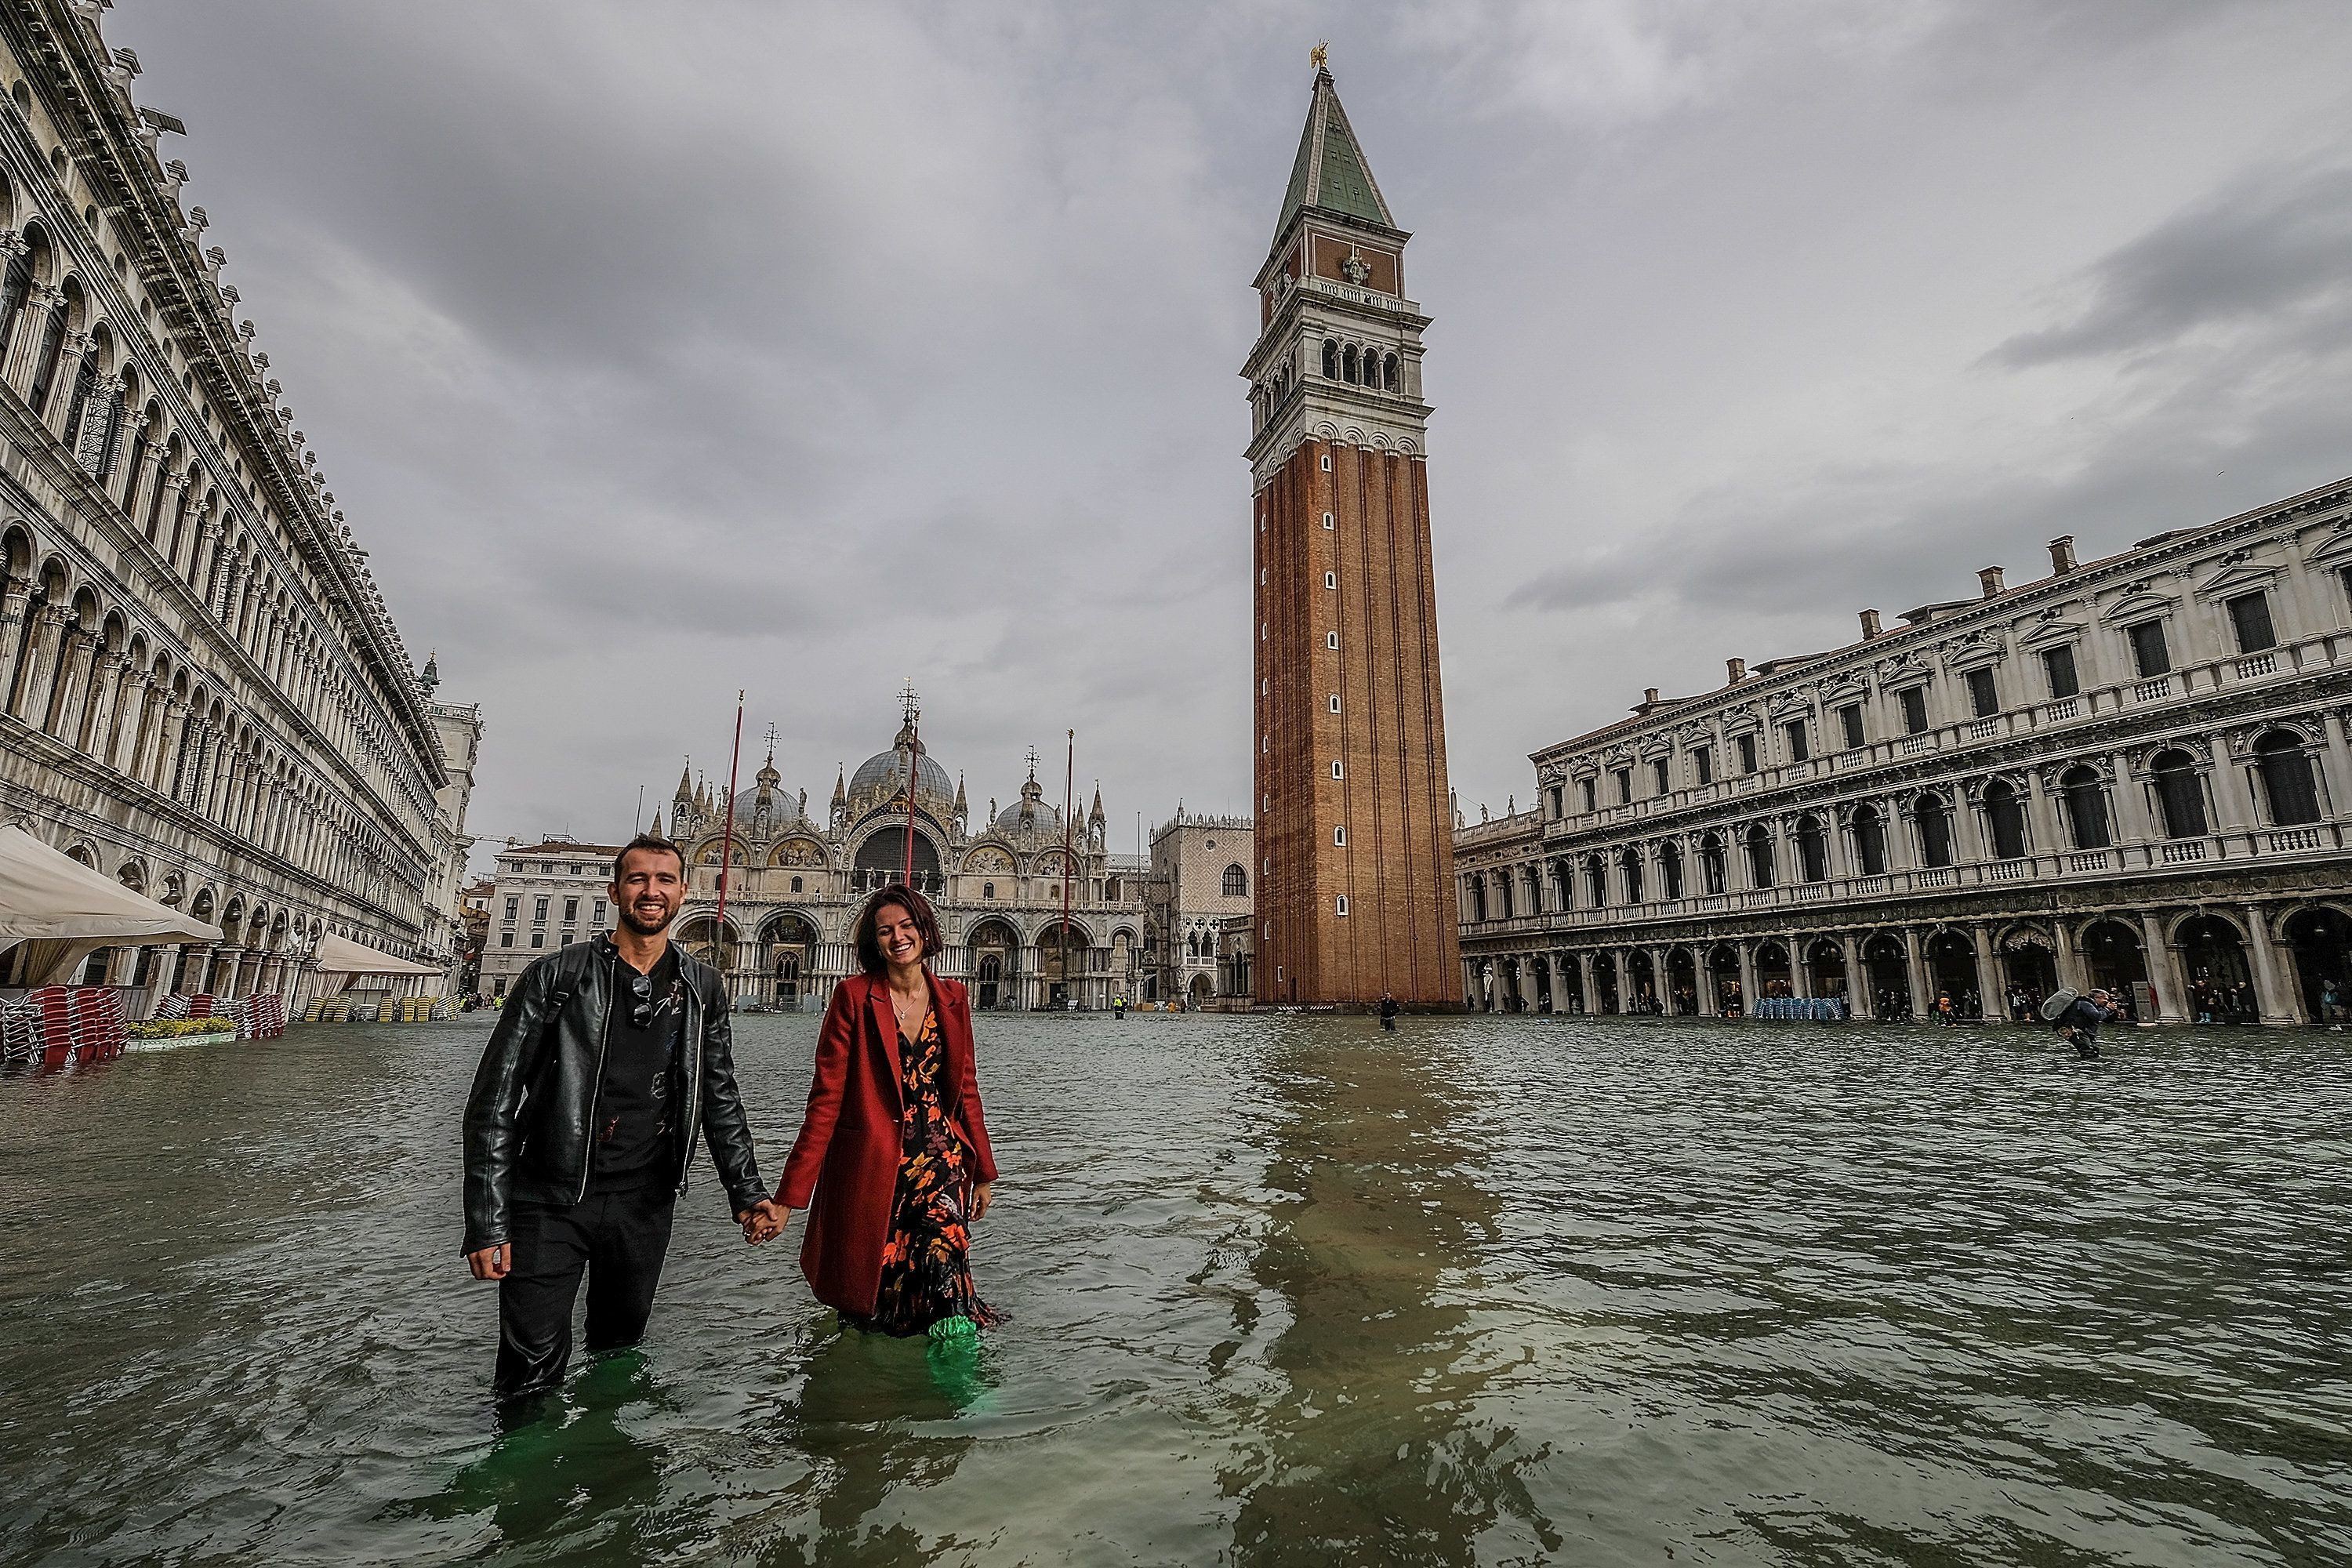 Venice suffers worst floods for a decade as winds raise water level